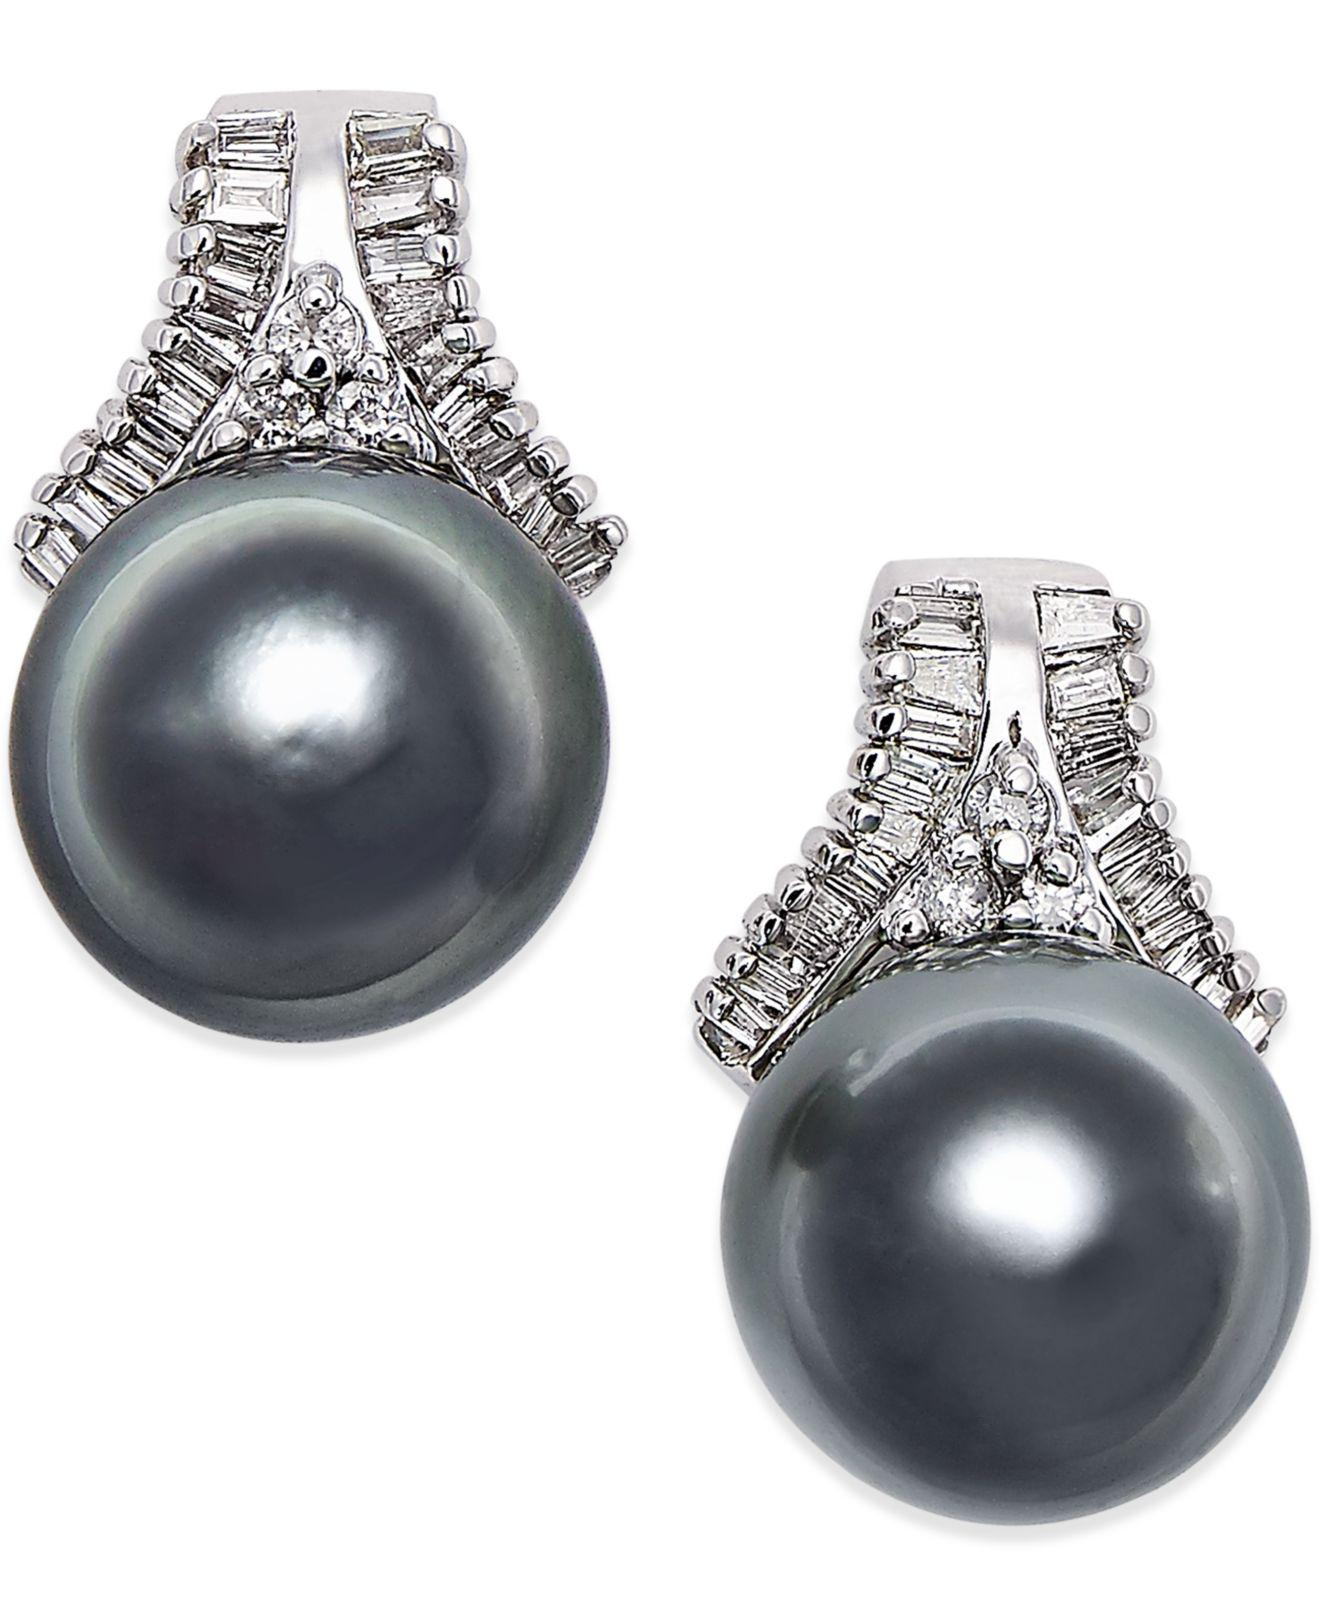 Cultured Tahitian Black Pearl 10mm And Diamond 5 8 Ct T W Stud Earrings In 14k White Gold